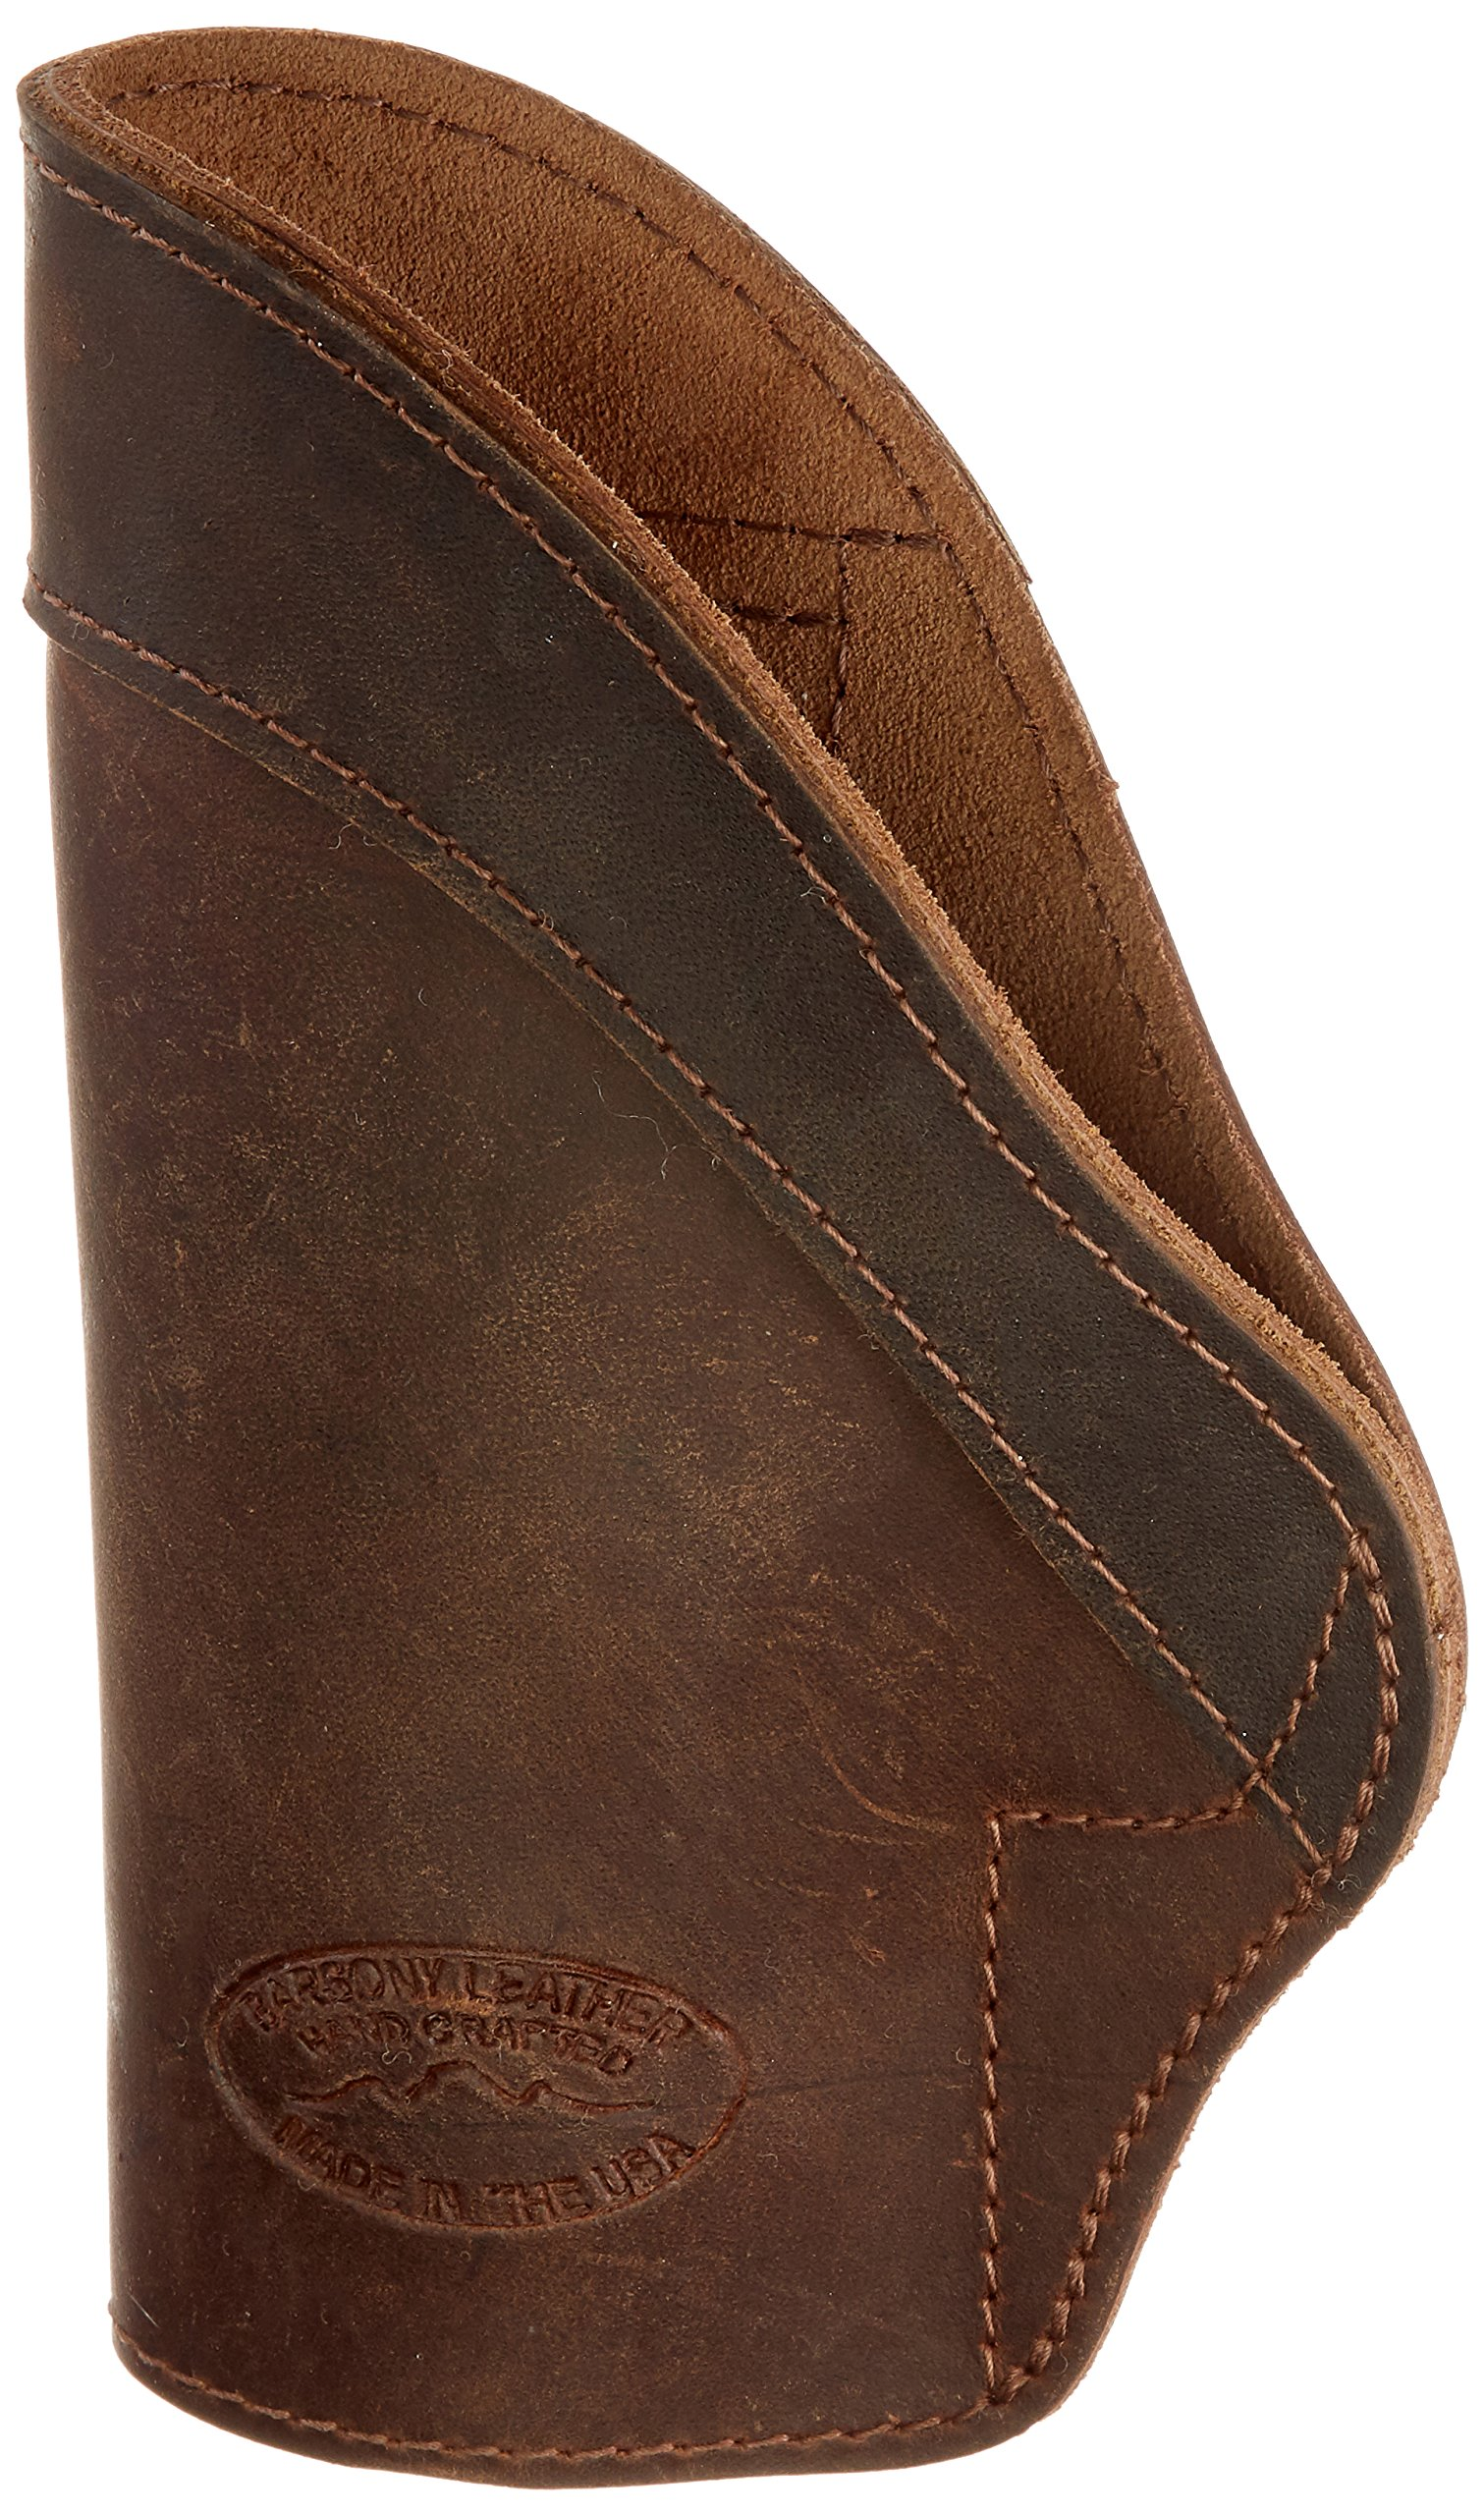 Barsony New Brown Leather IWB Holster + Magazine Pouch for